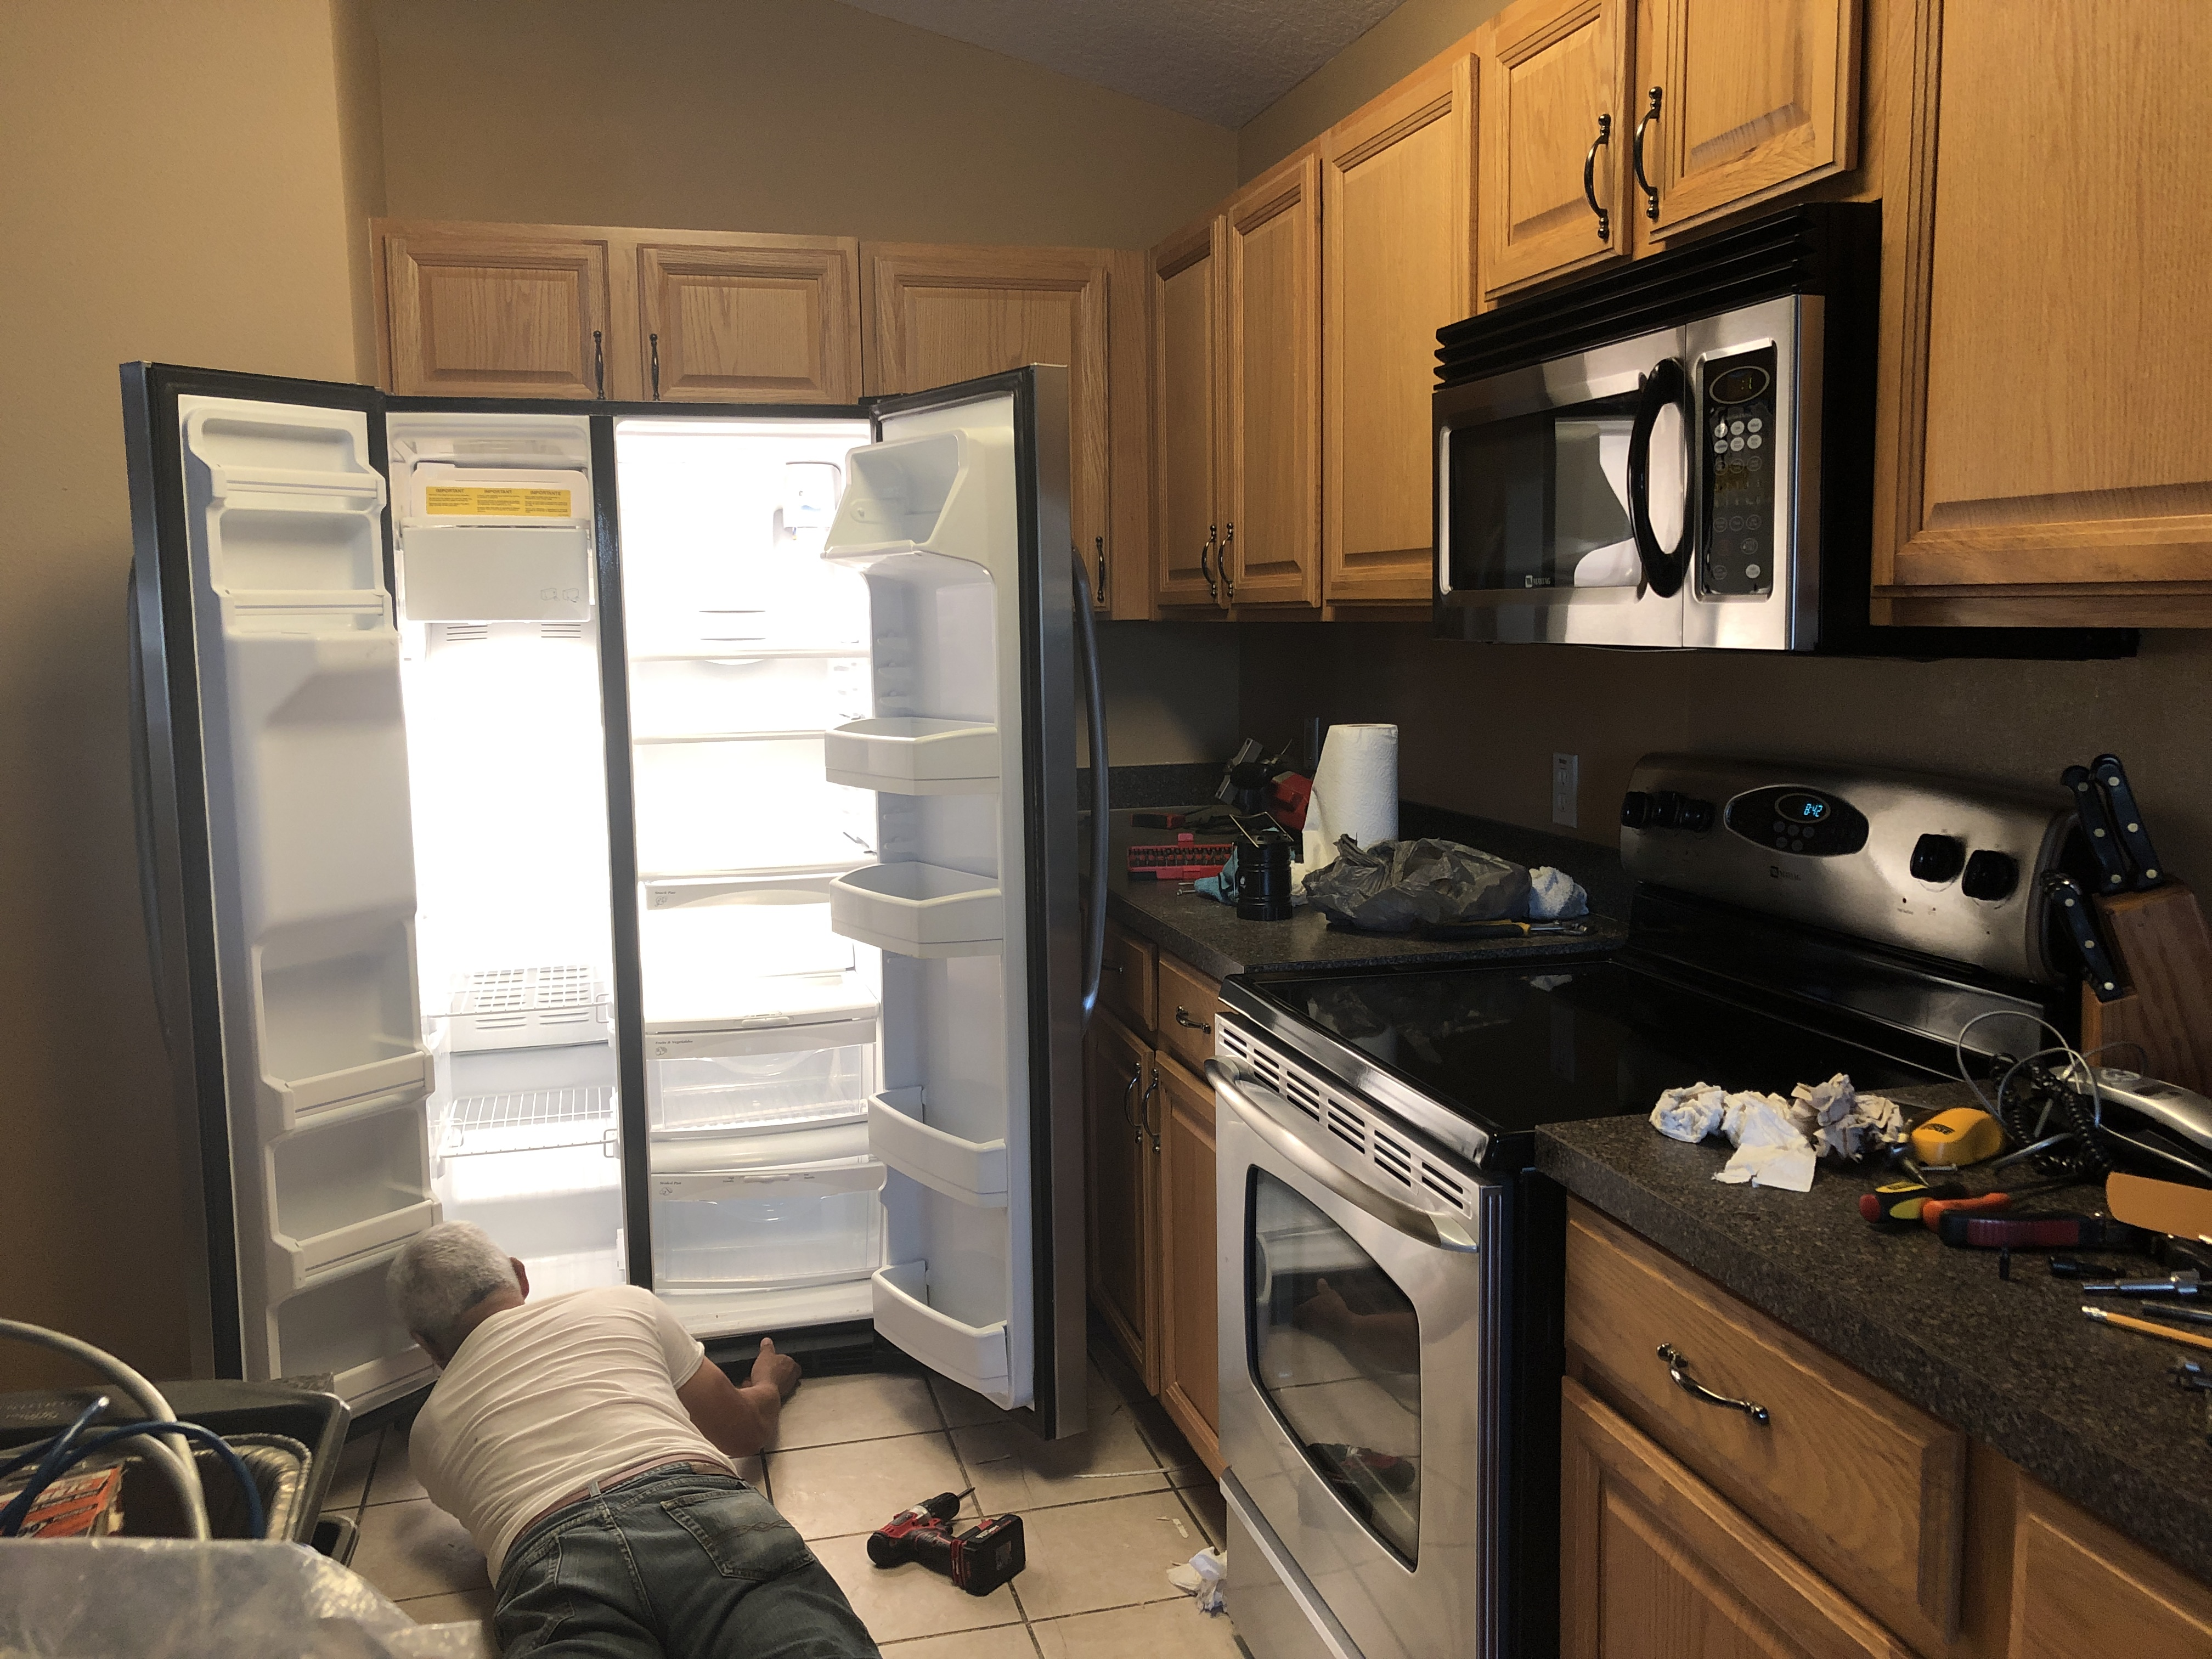 Vacation Rental Maintenance